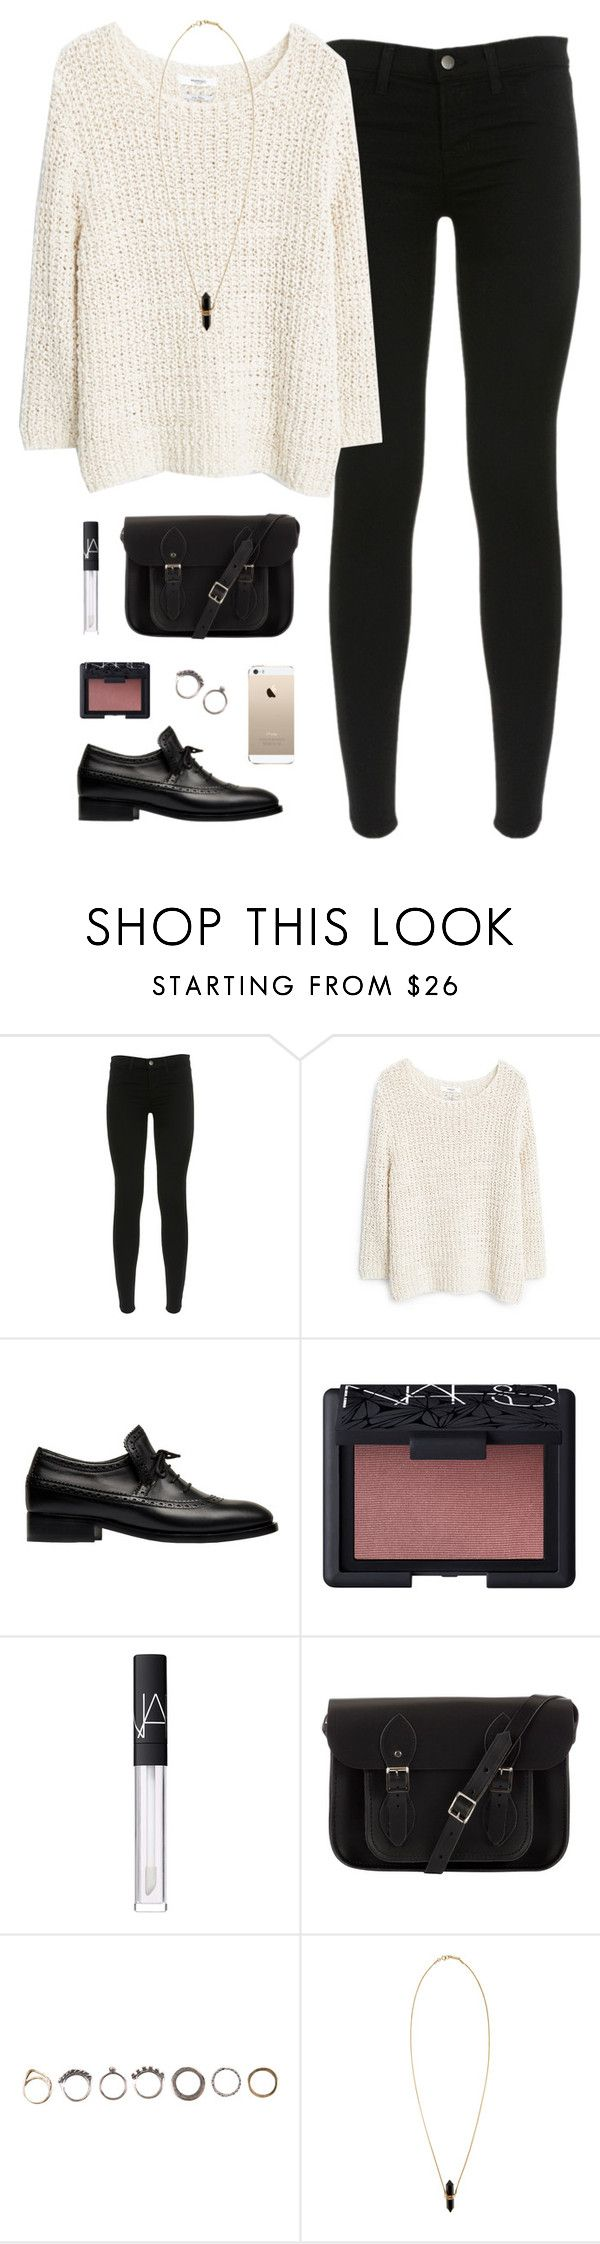 """happy holidays im baaaack; desc"" by classically-preppy ❤ liked on Polyvore featuring J Brand, MANGO, Balenciaga, NARS Cosmetics, The Cambridge Satchel Company, Iosselliani and Isabel Marant"